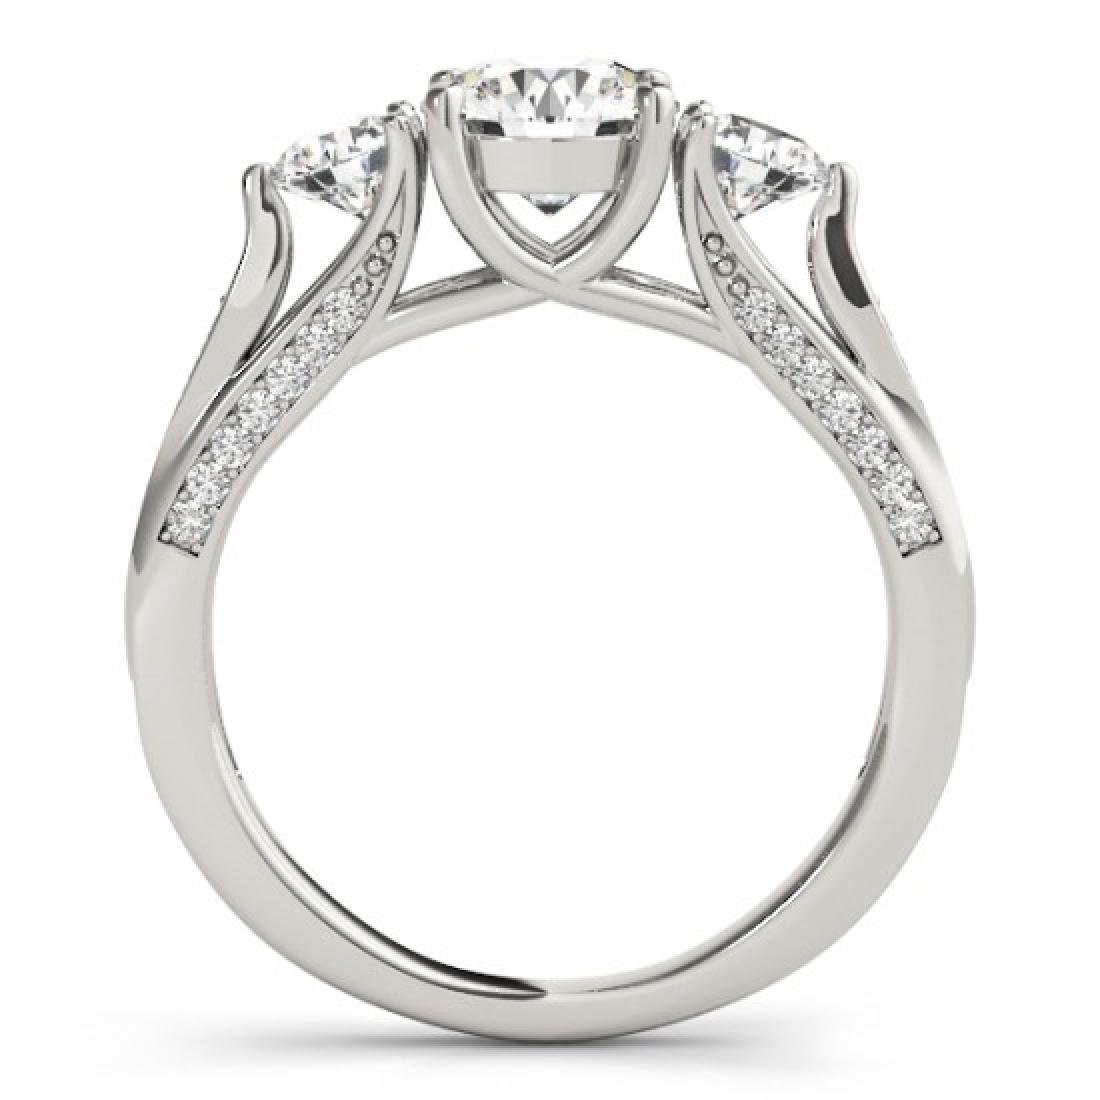 1.75 CTW Certified VS/SI Diamond 3 Stone Ring 14K White - 2